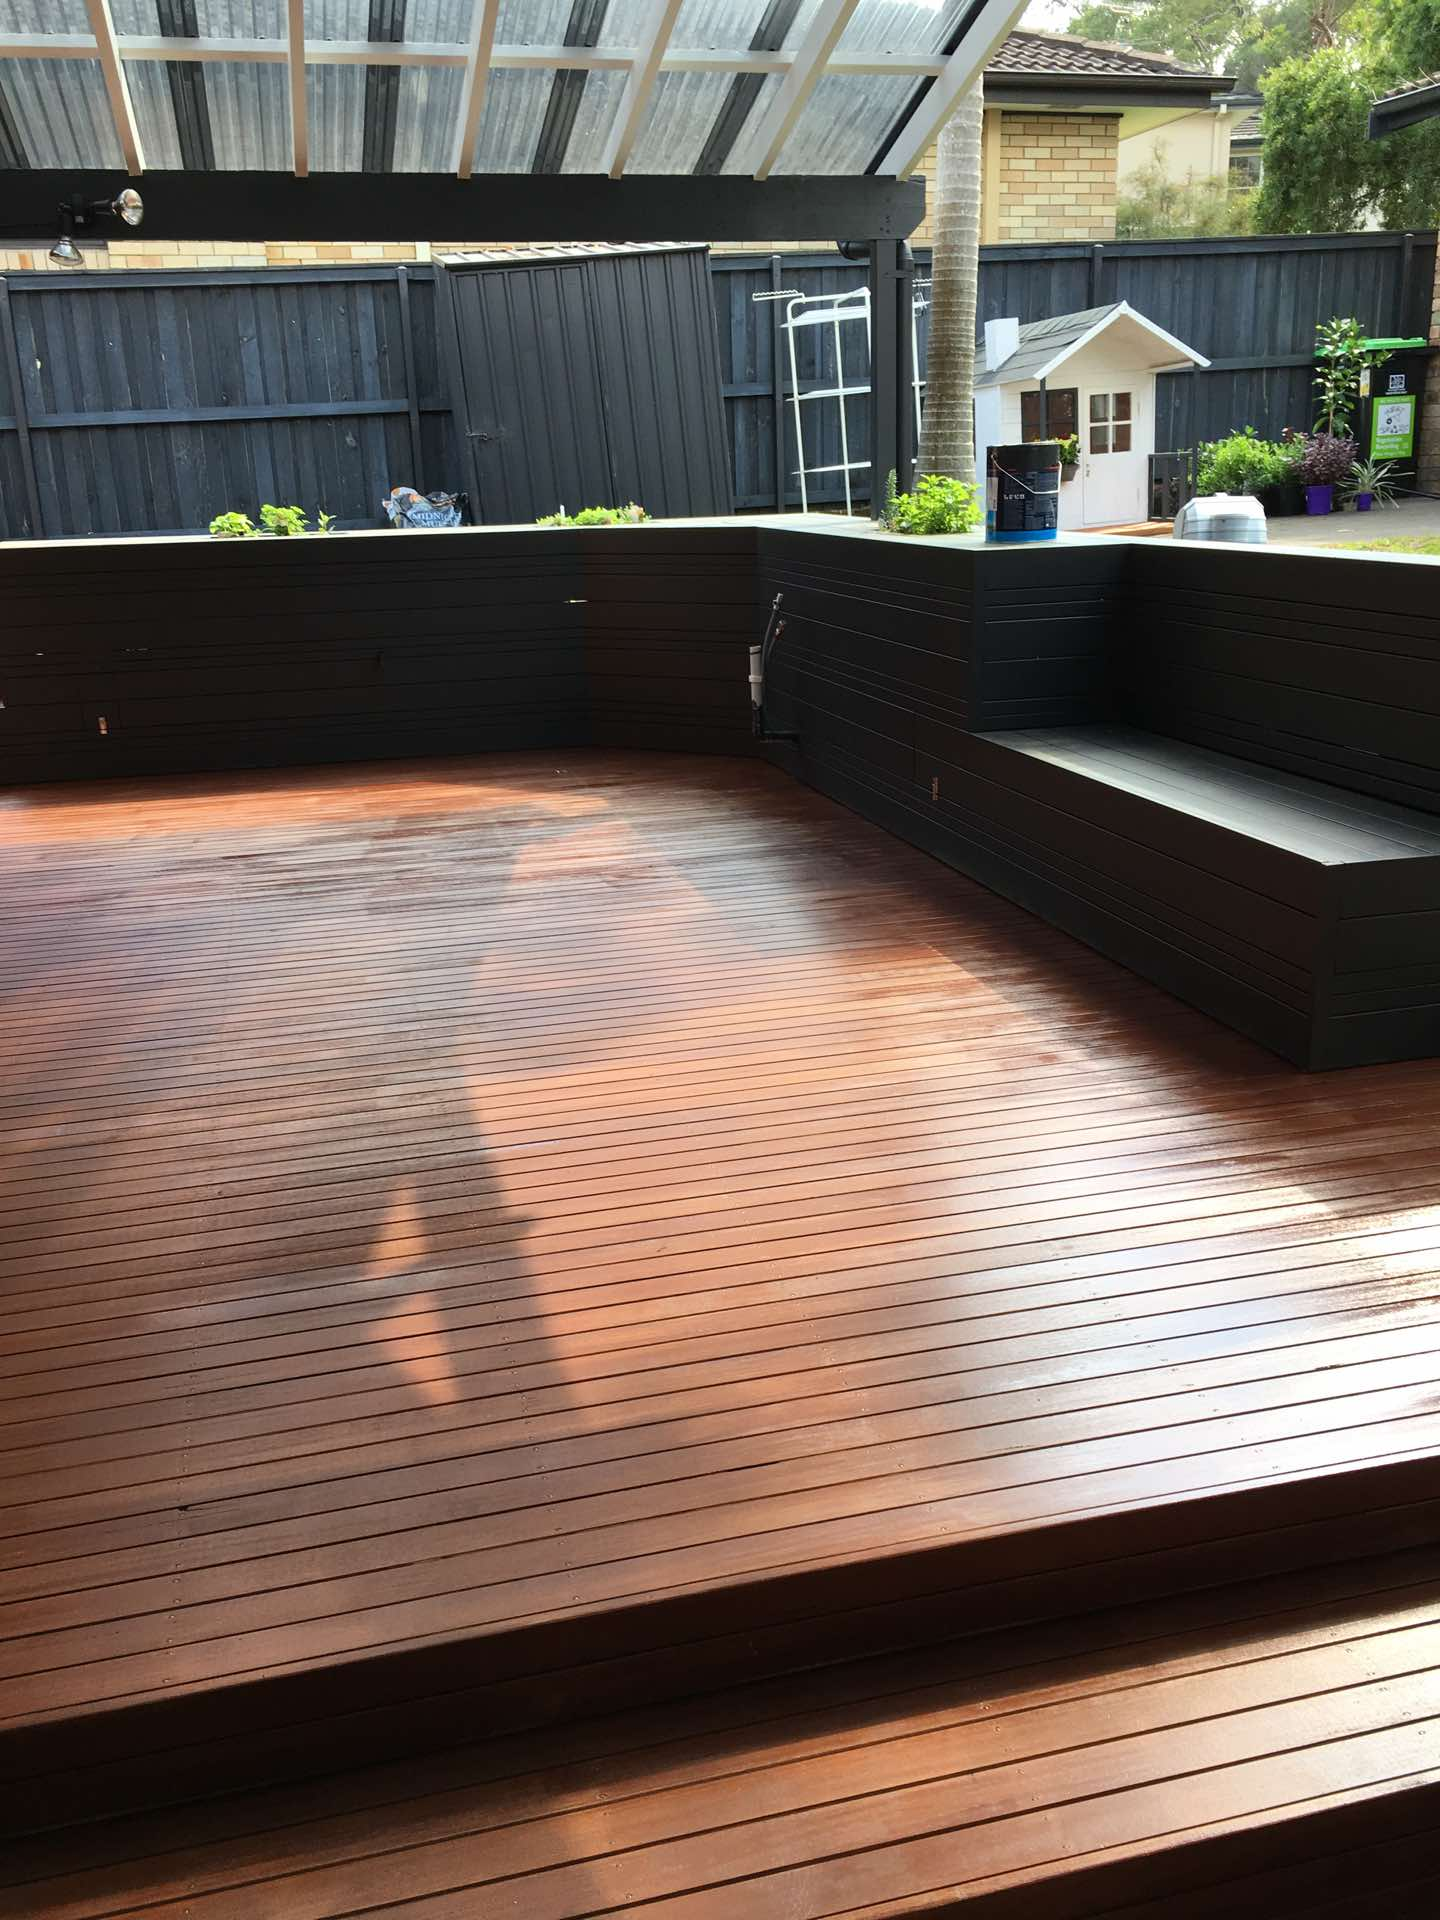 All done. Ready for outdoor kitchen and Bbq, tables and chairs Frenchs Forest, NSW